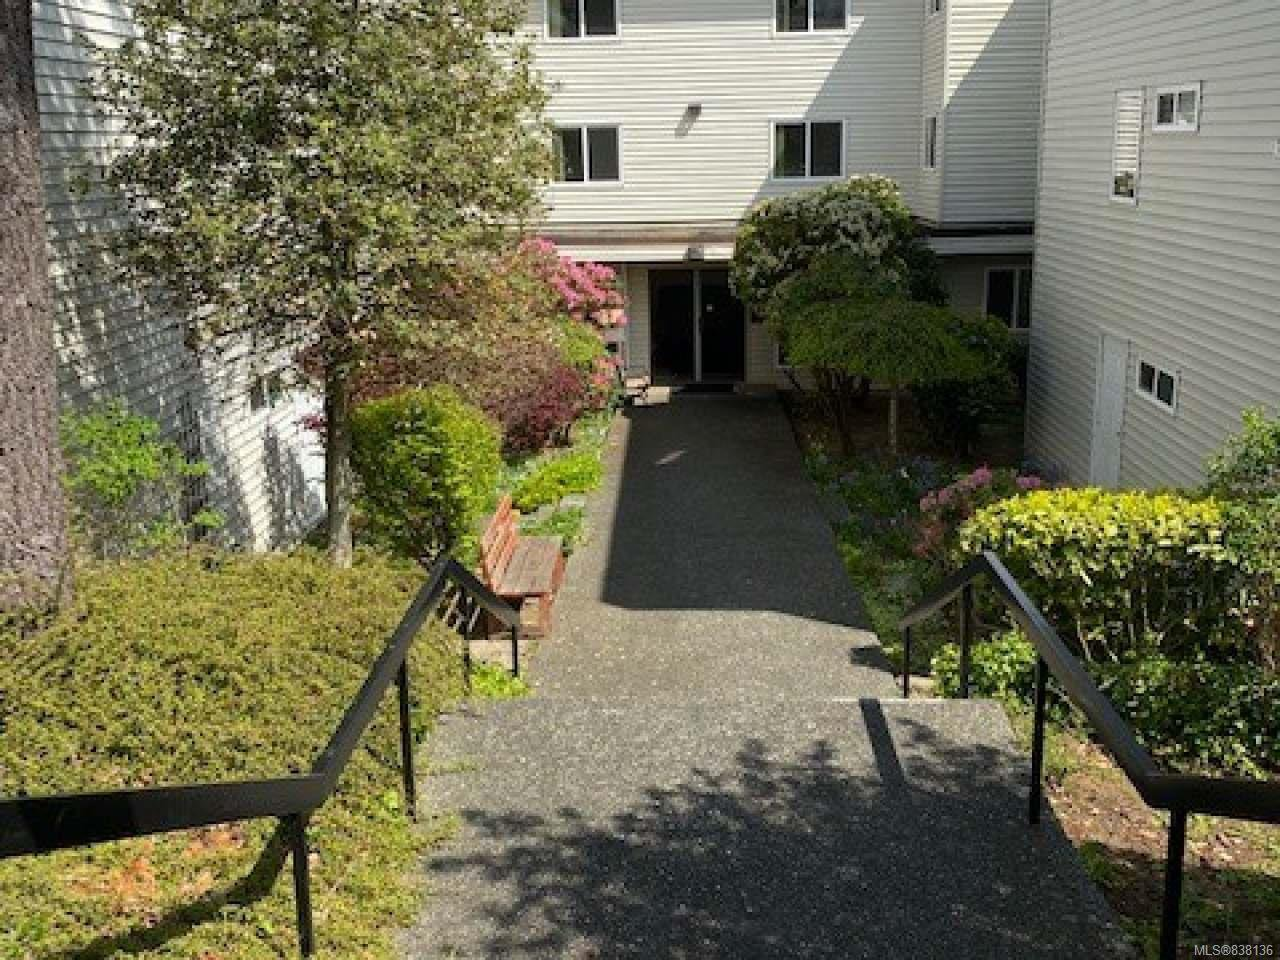 Main Photo: 303 615 Alder St in CAMPBELL RIVER: CR Campbell River Central Condo for sale (Campbell River)  : MLS®# 838136